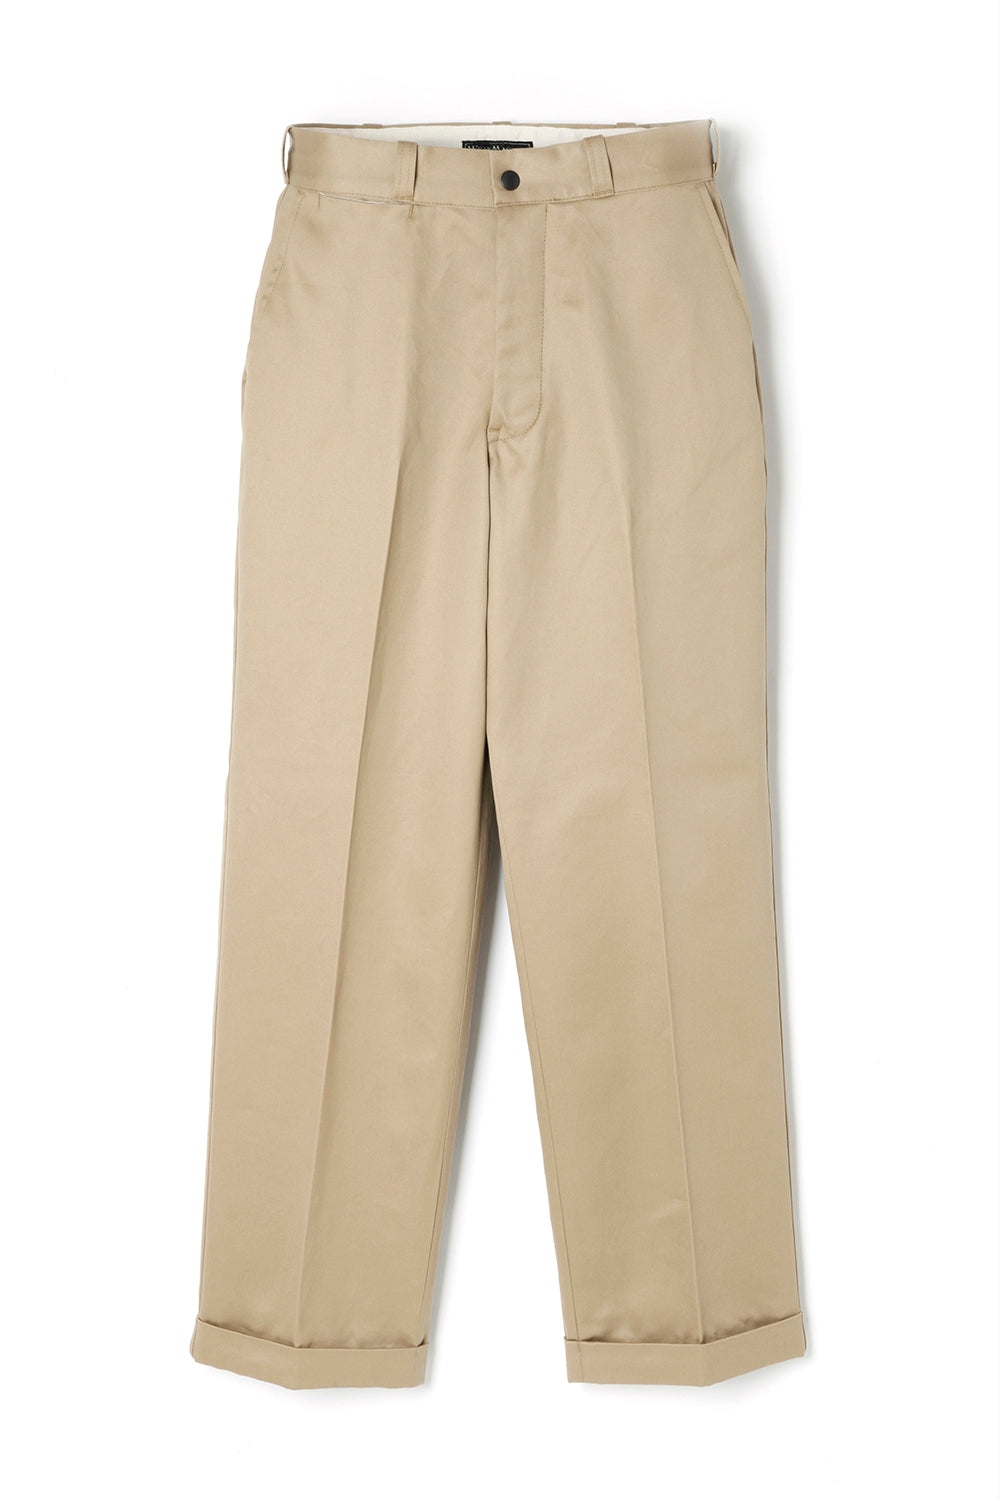 Lot.344 Work Pants